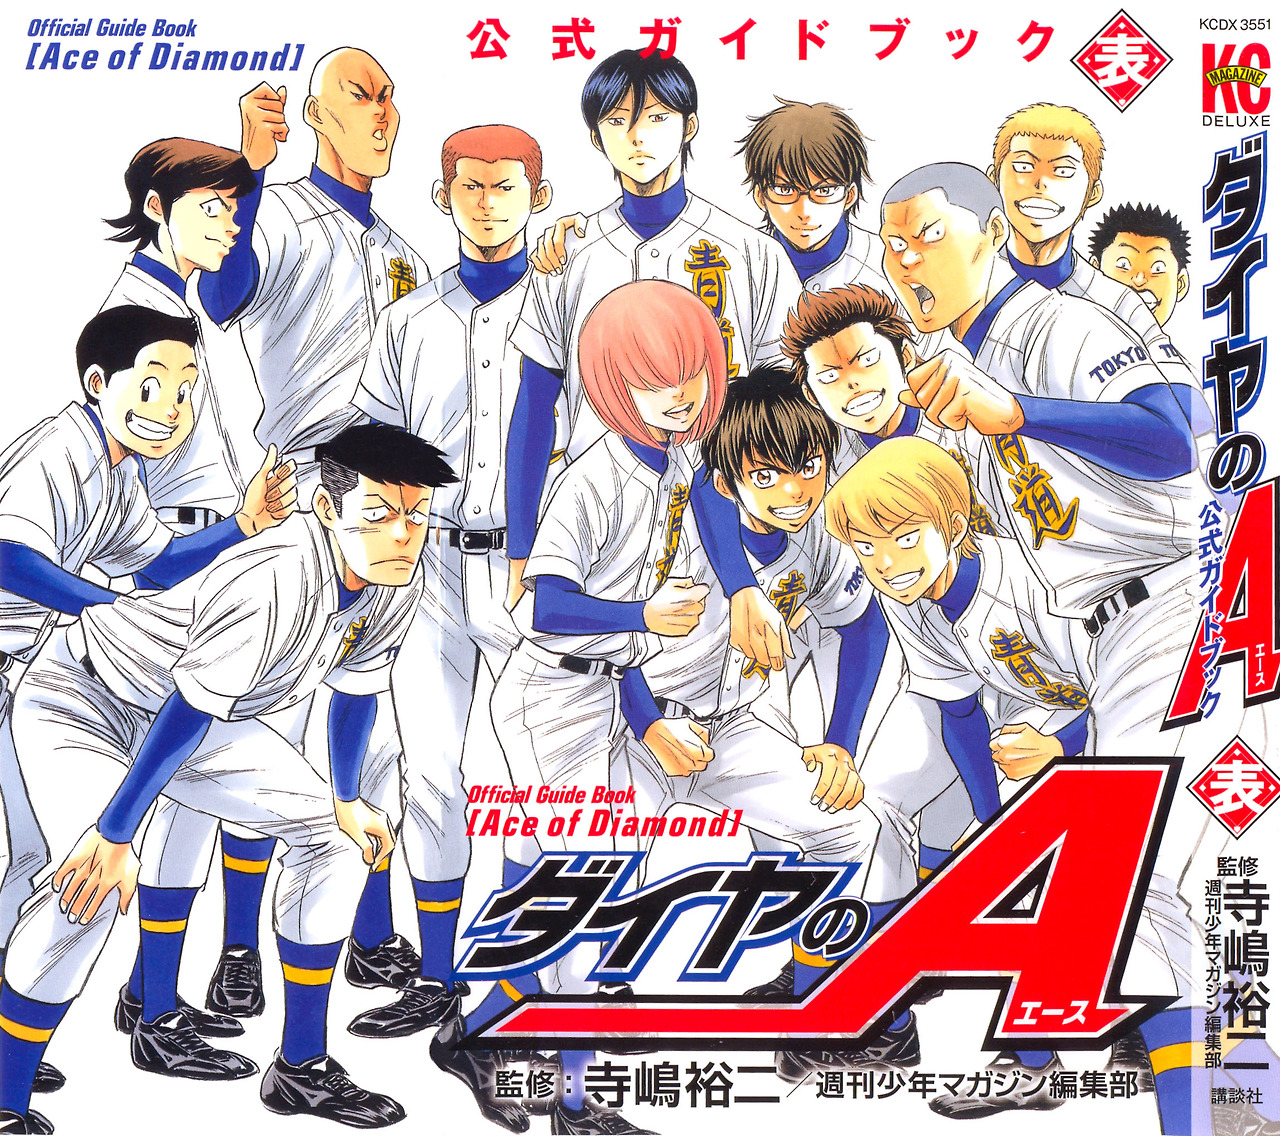 Diamond No Ace Outfit: Image - Official.guide.book.volume1.jpg